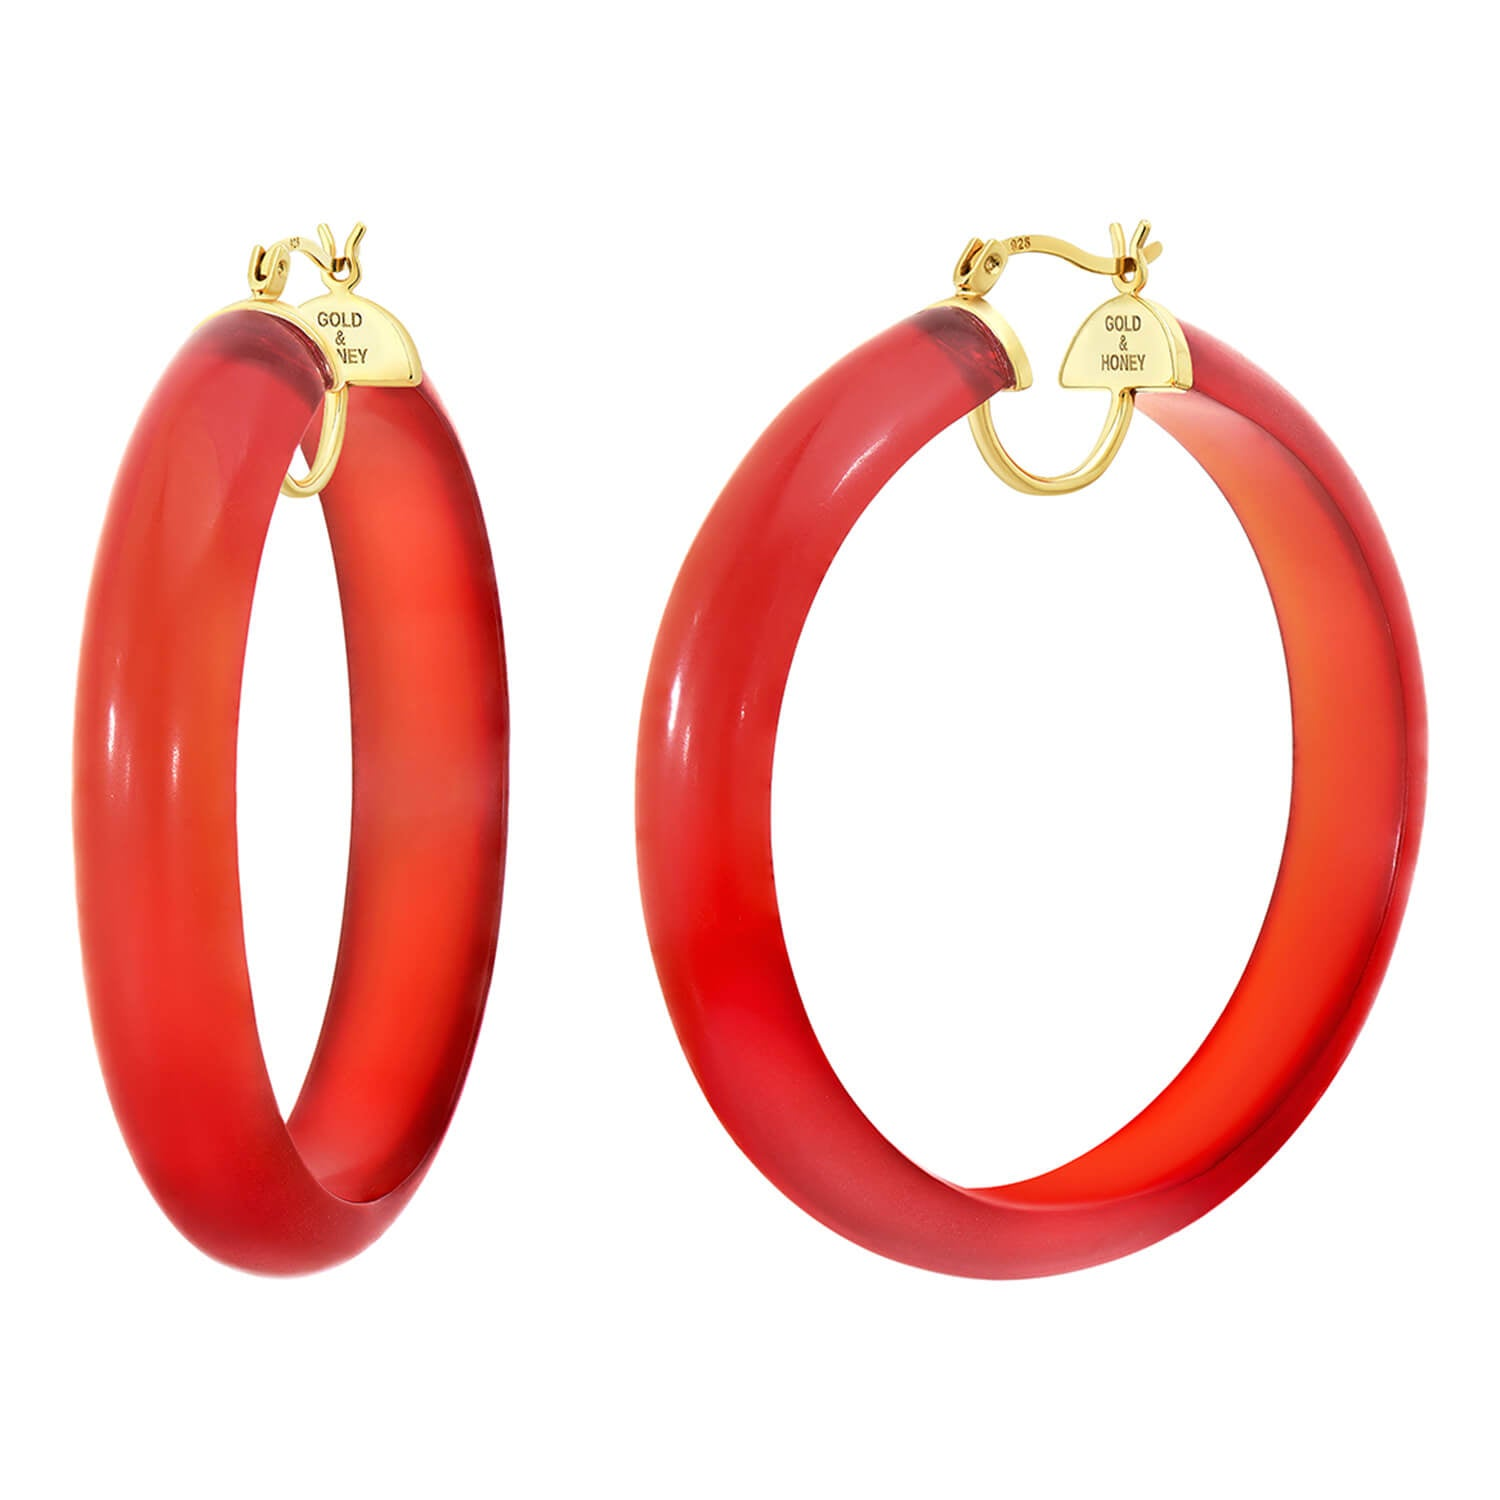 Frosted Lucite Hoops in Red